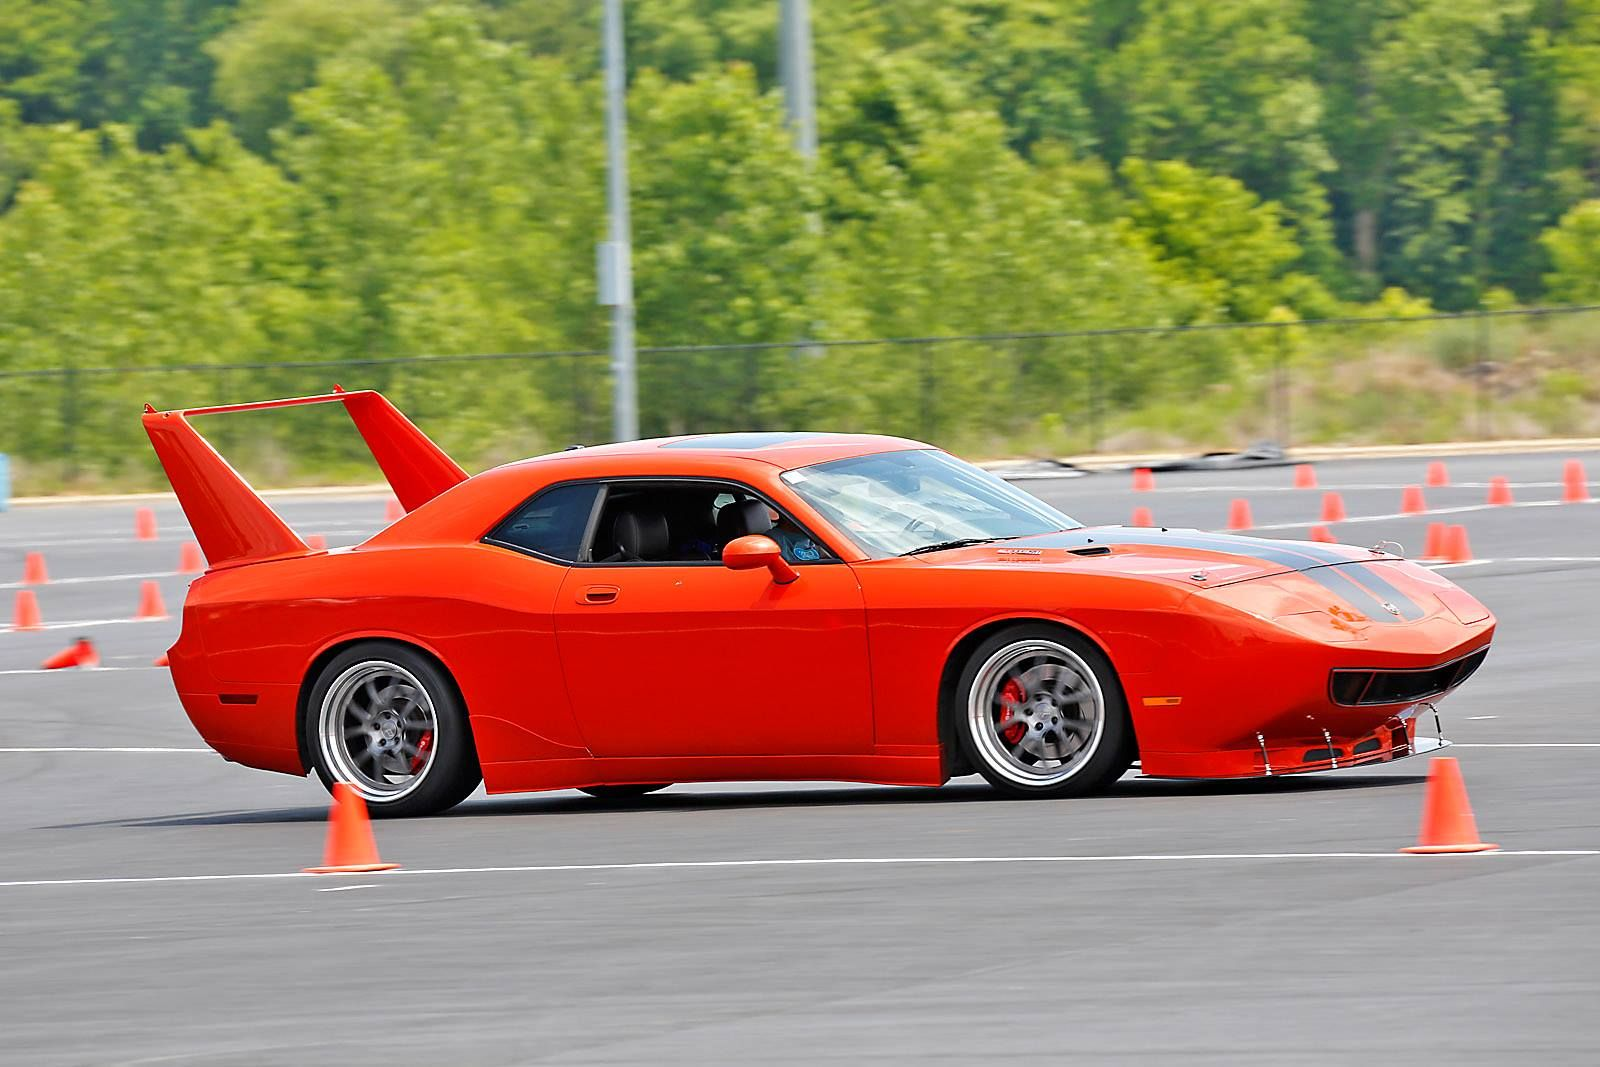 Randy S Dodge Challenger Srt8 Is Equipped With The